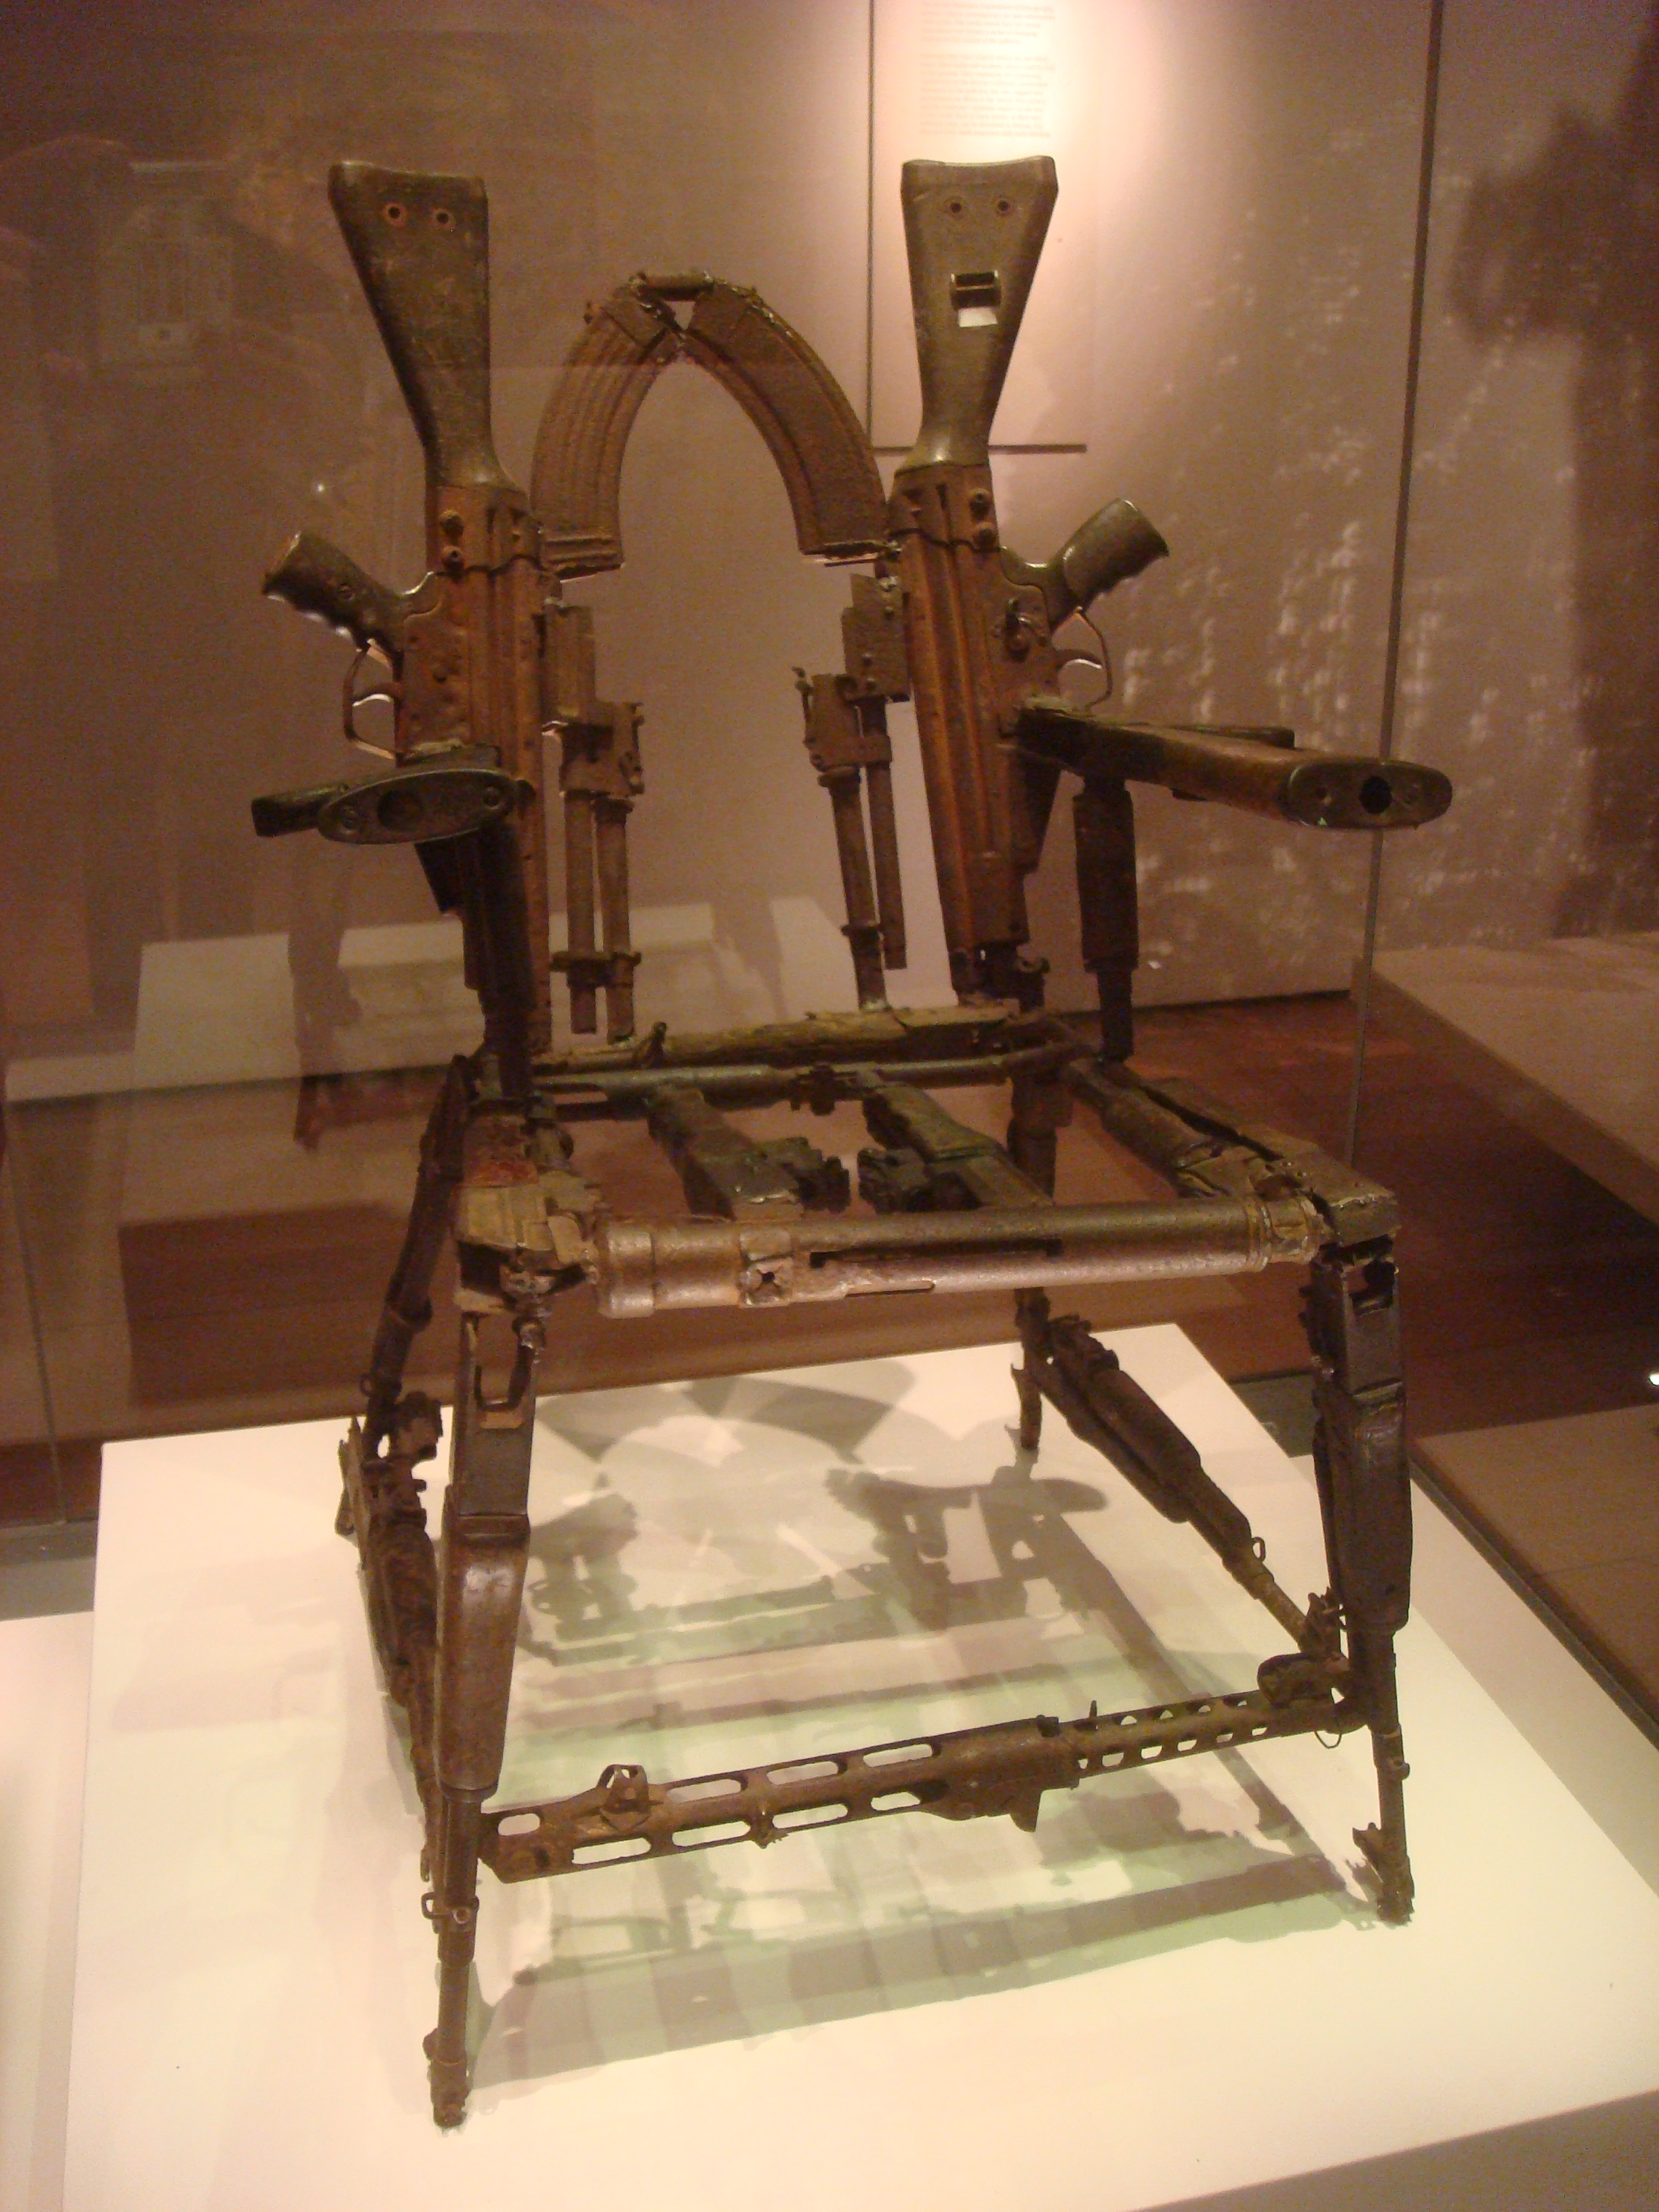 Throne of Weapons by Cristovao Canhavato